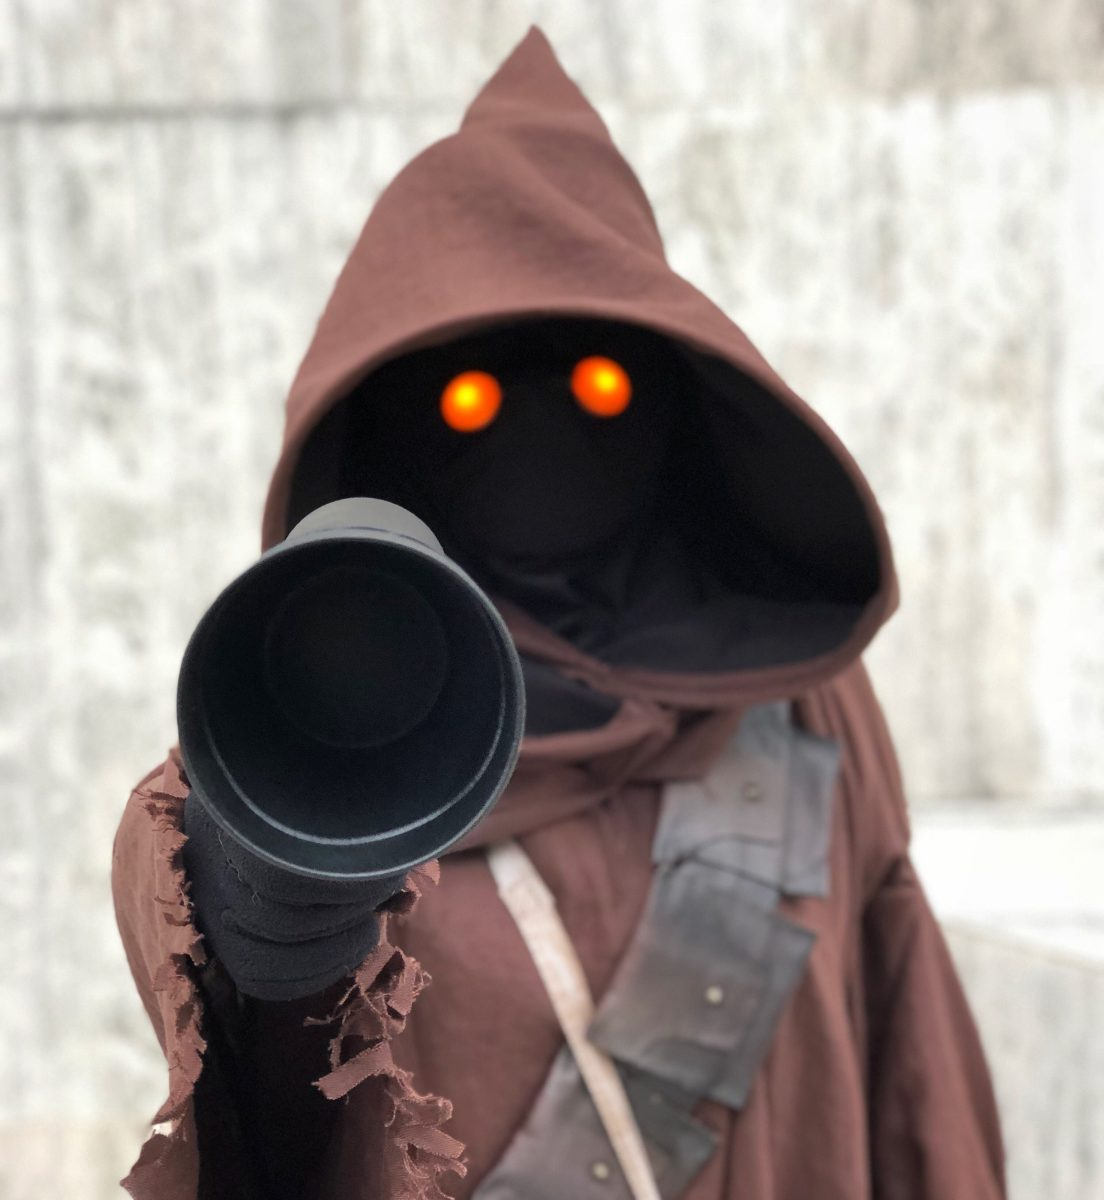 Costuming a Jawa from Star Wars